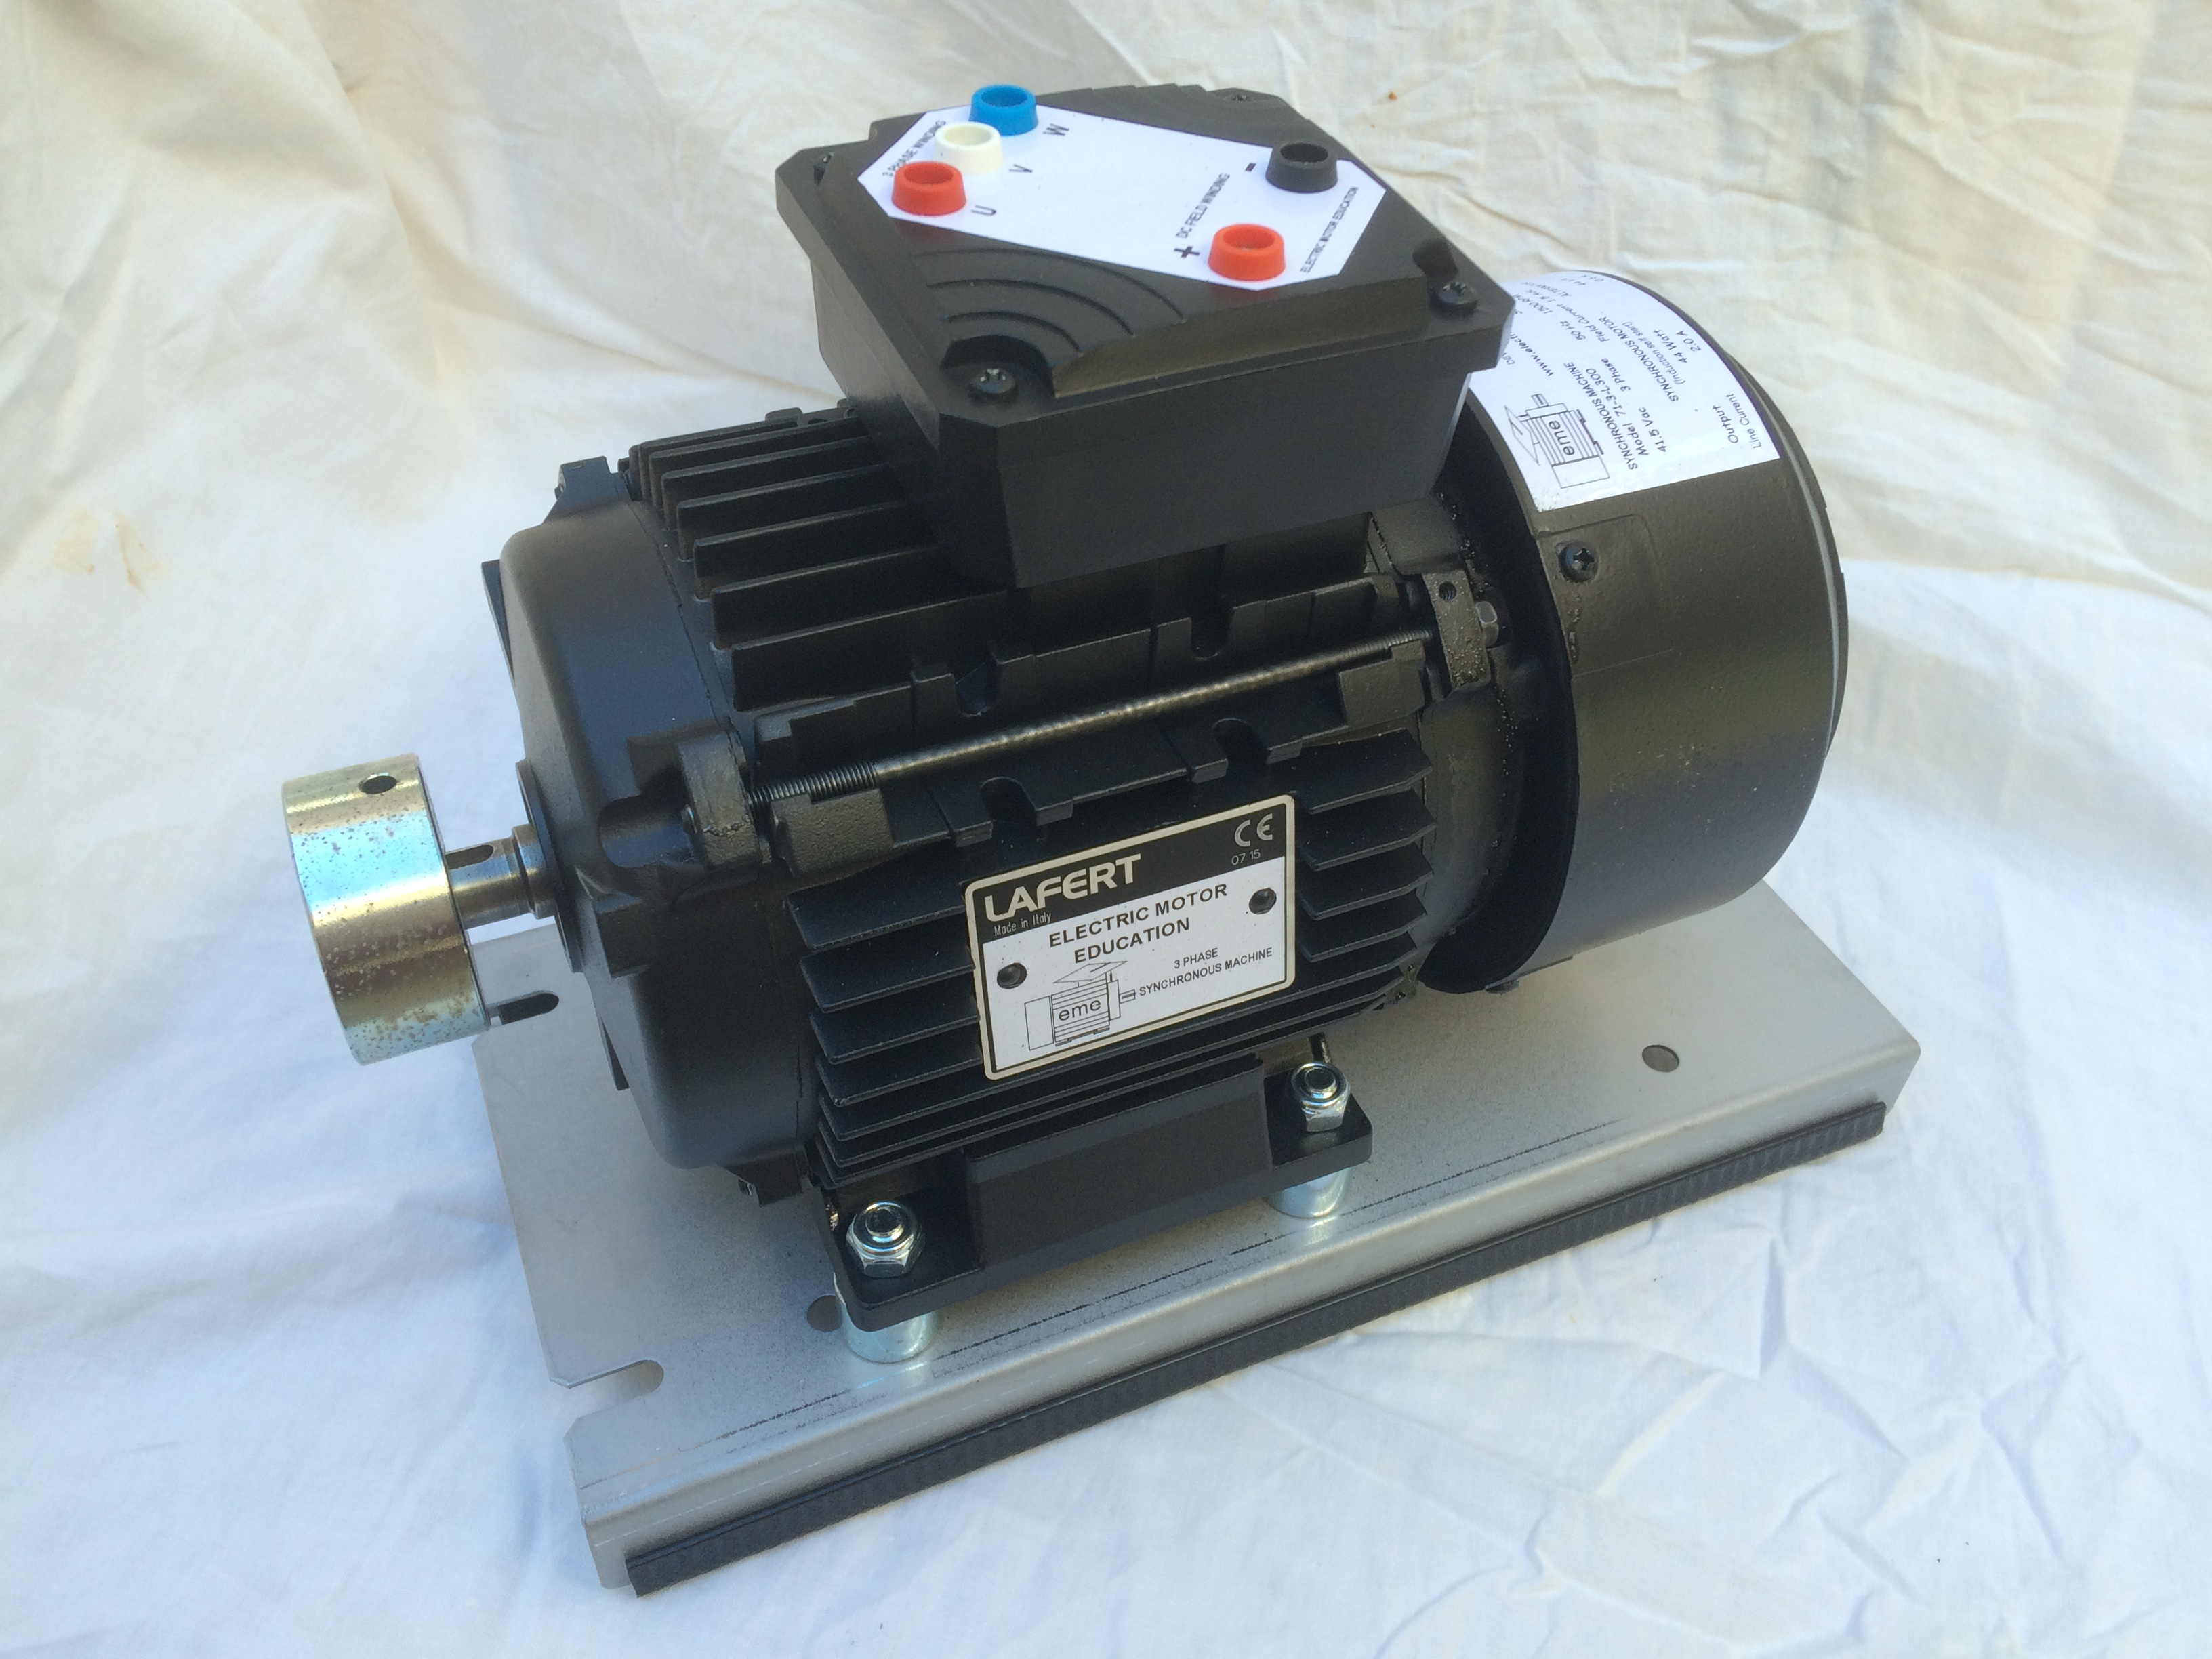 Products Electric Motor Education Variable Speed Single Phase Wiring Diagram 71 3 L300 Alternator Synchronous 44va